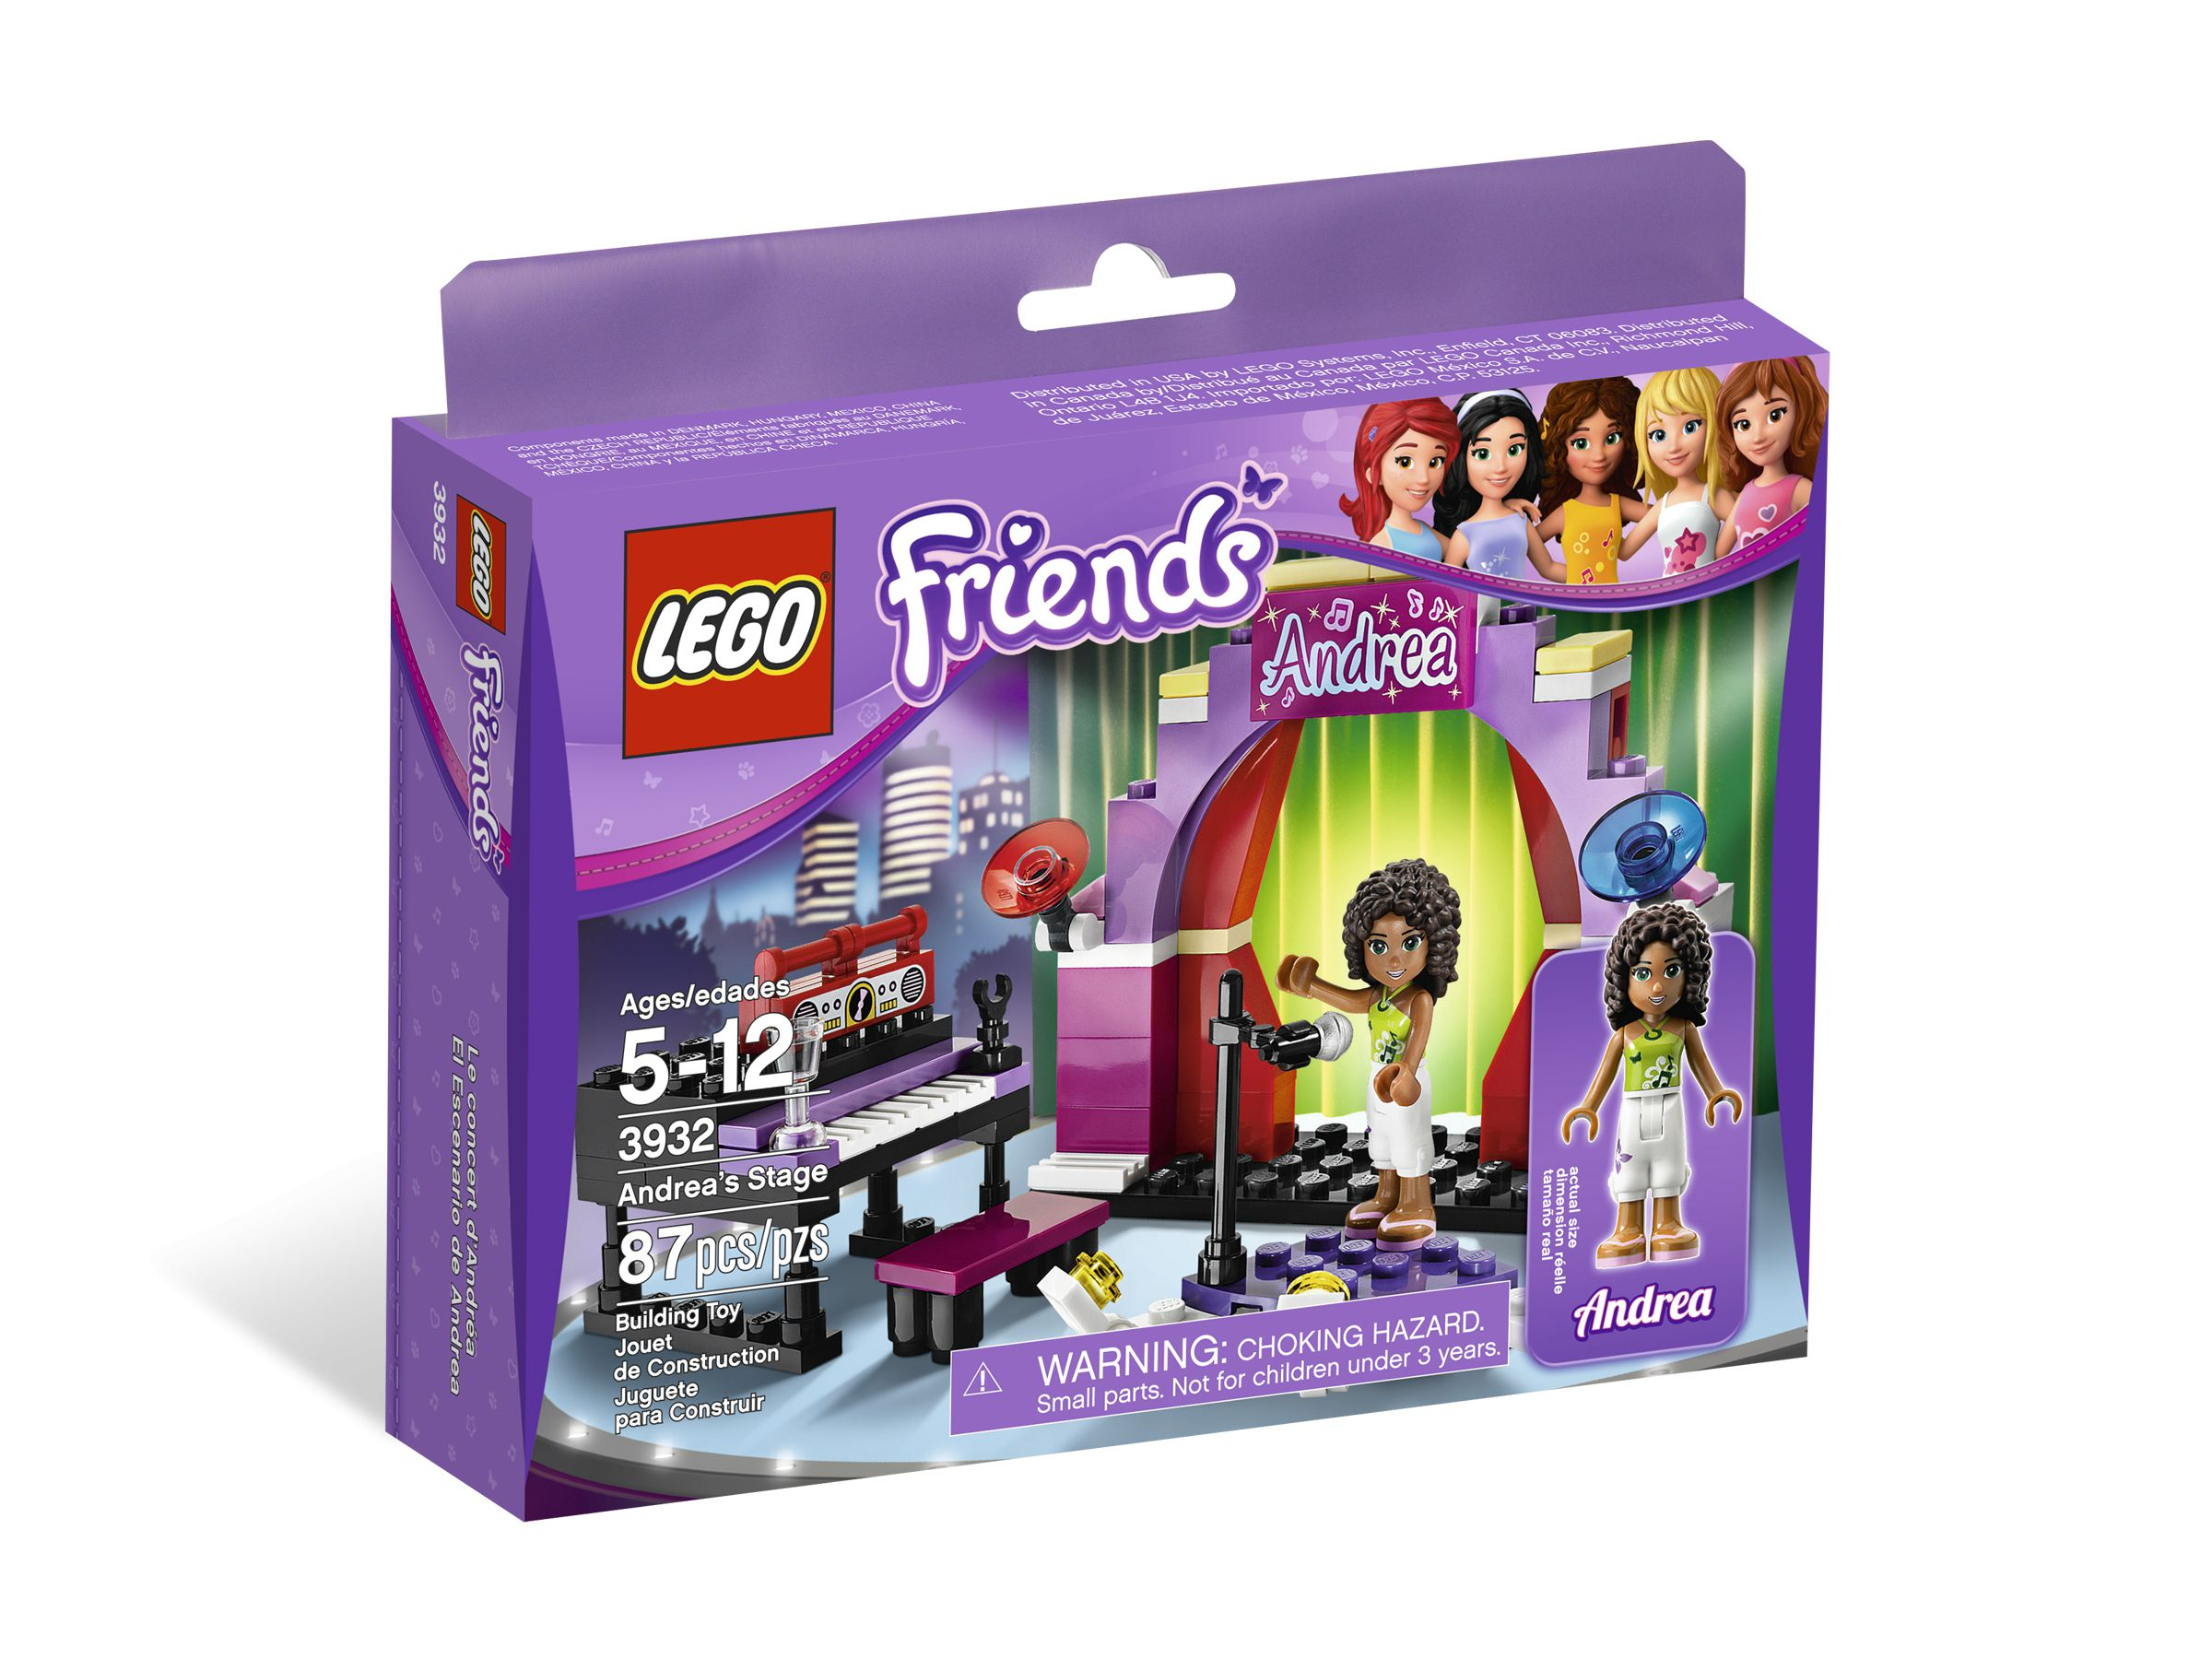 LEGO Friends 3932 Andrea's Stage LEGO_3932_alt1.jpg